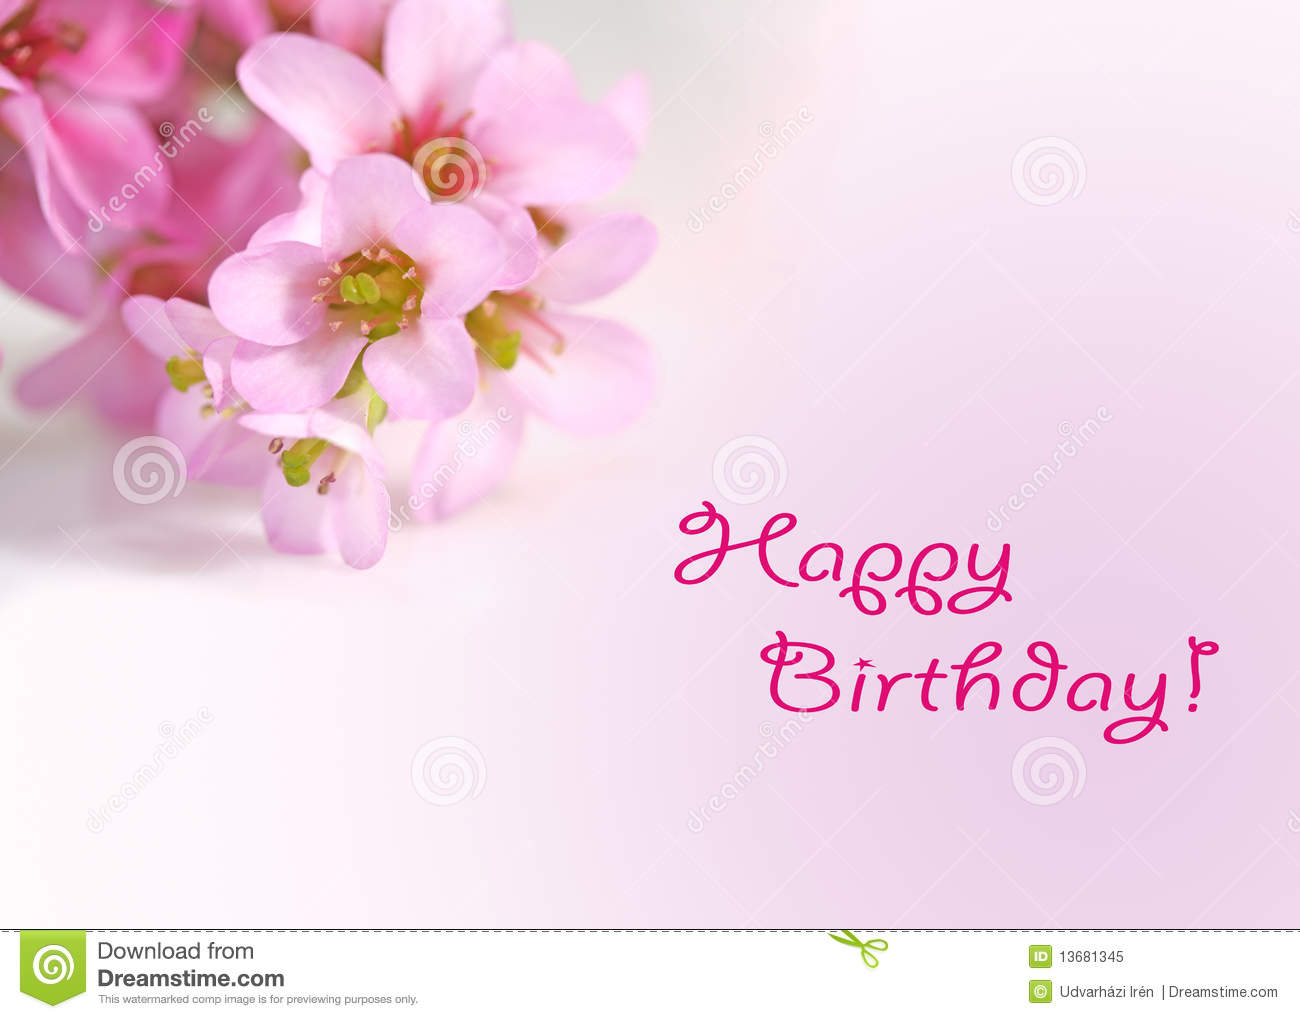 happy birthday greetings card flowers stock photos, images, Beautiful flower